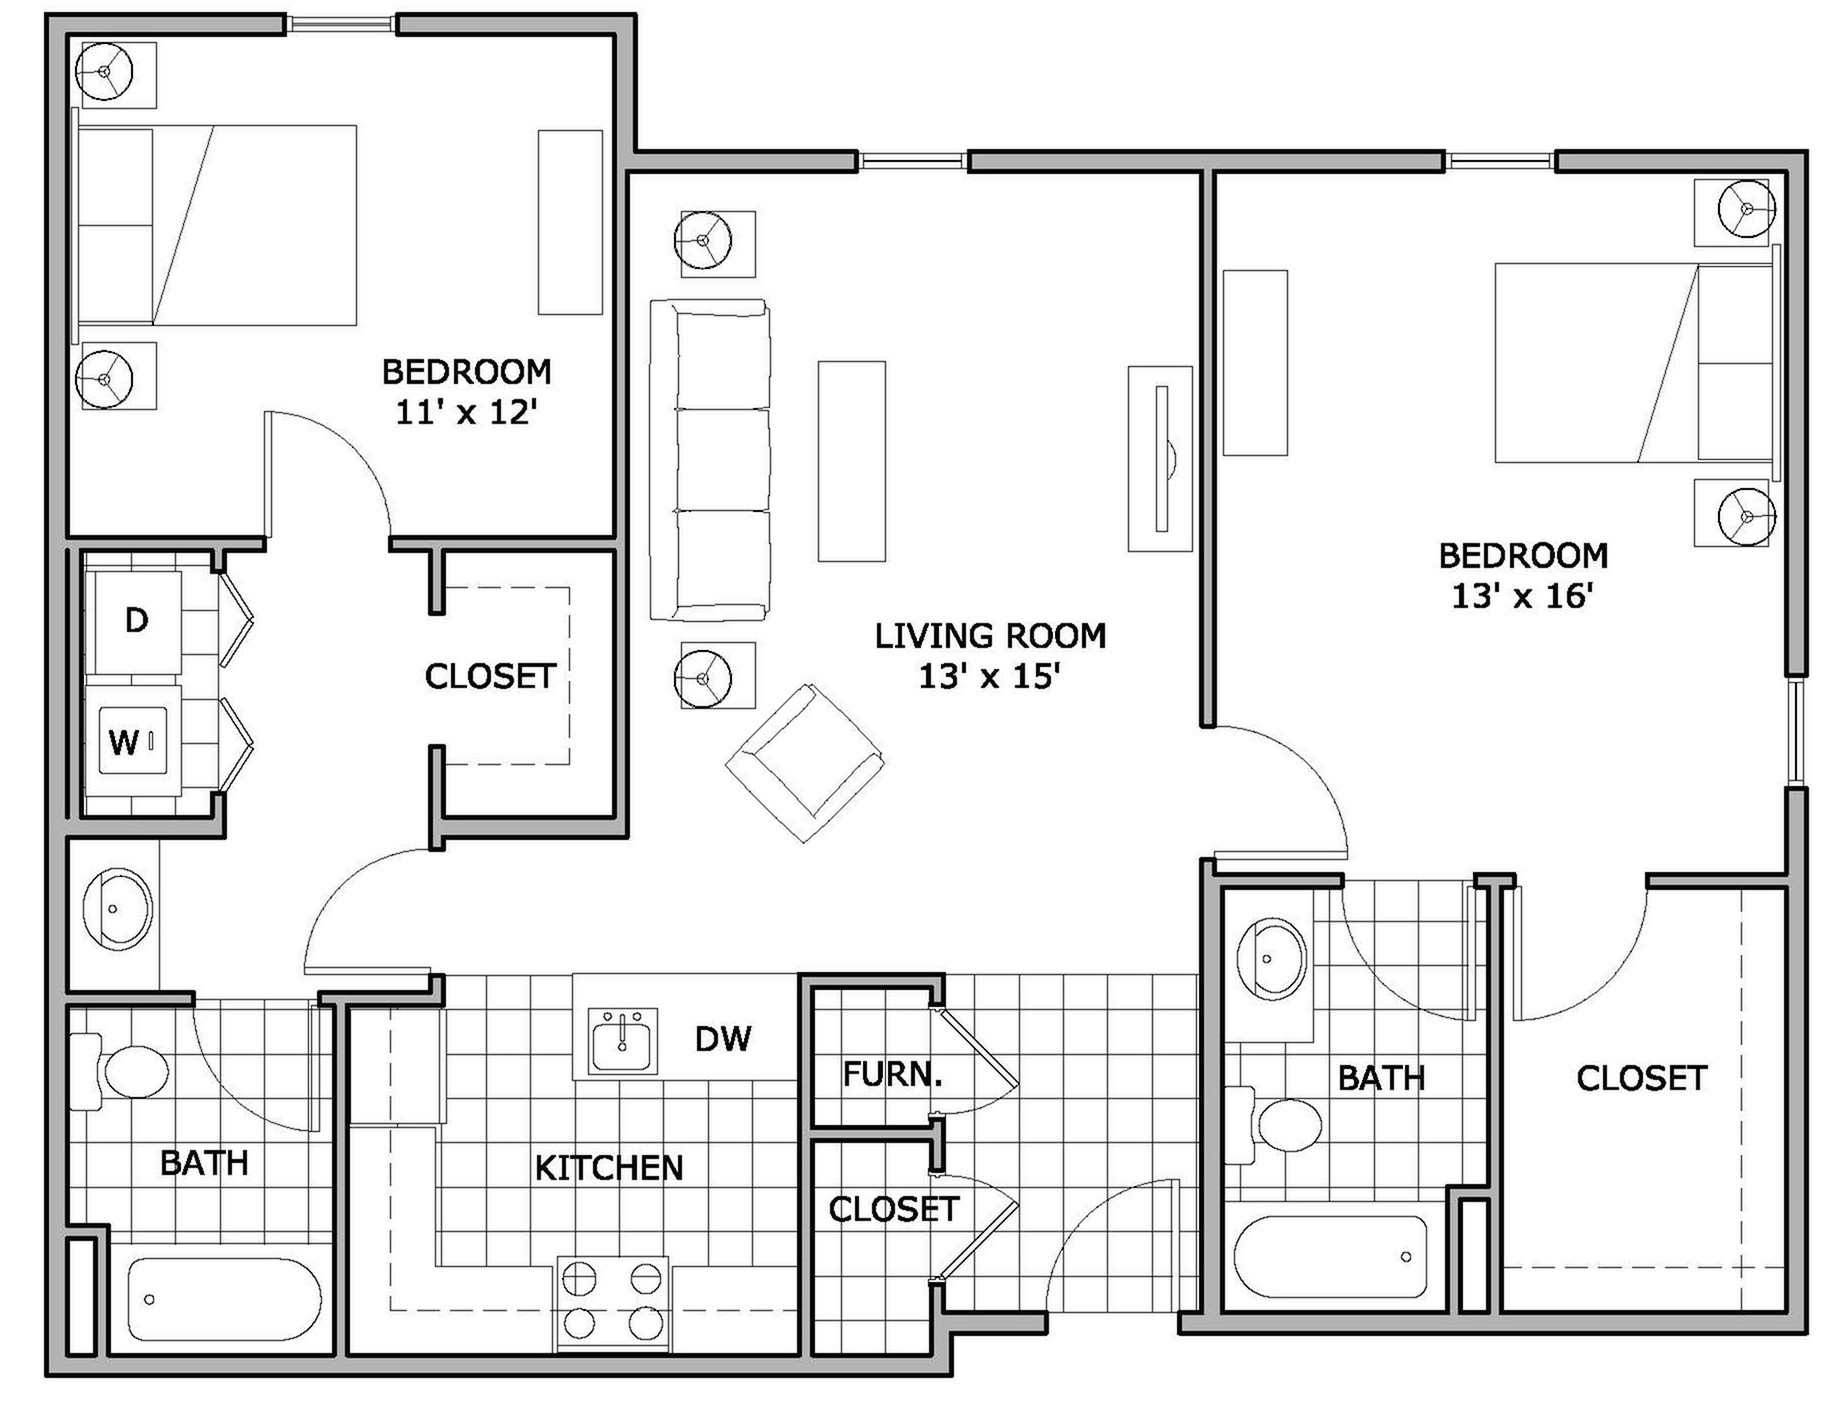 2 bed 2 bathapartment in springfield mo the abbey for 3 bedroom 2 bath garage apartment plans